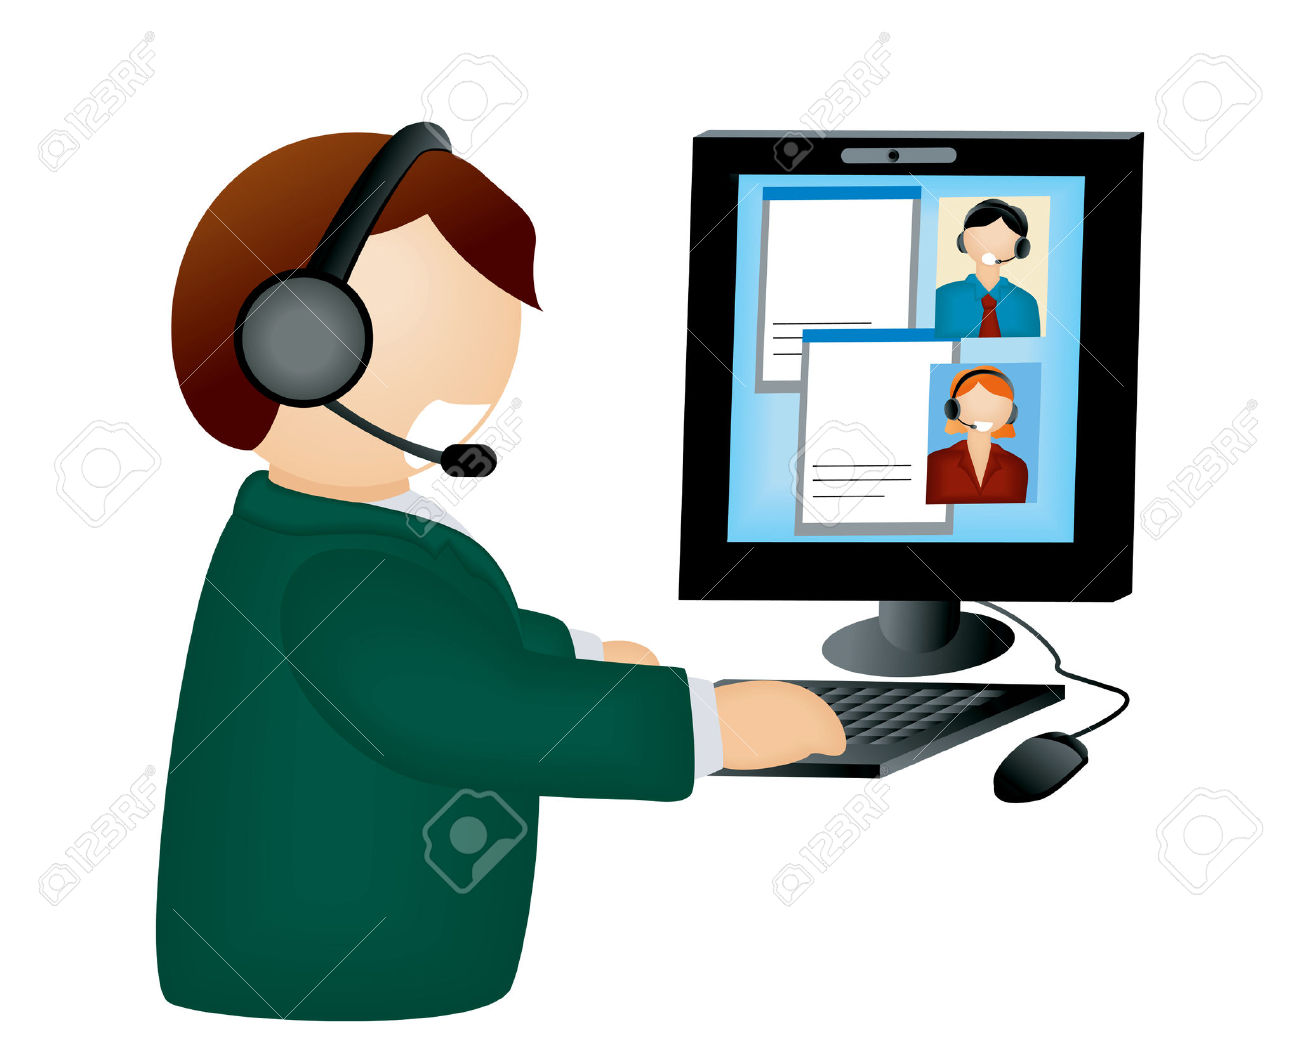 web conference call clipart panda free clipart images